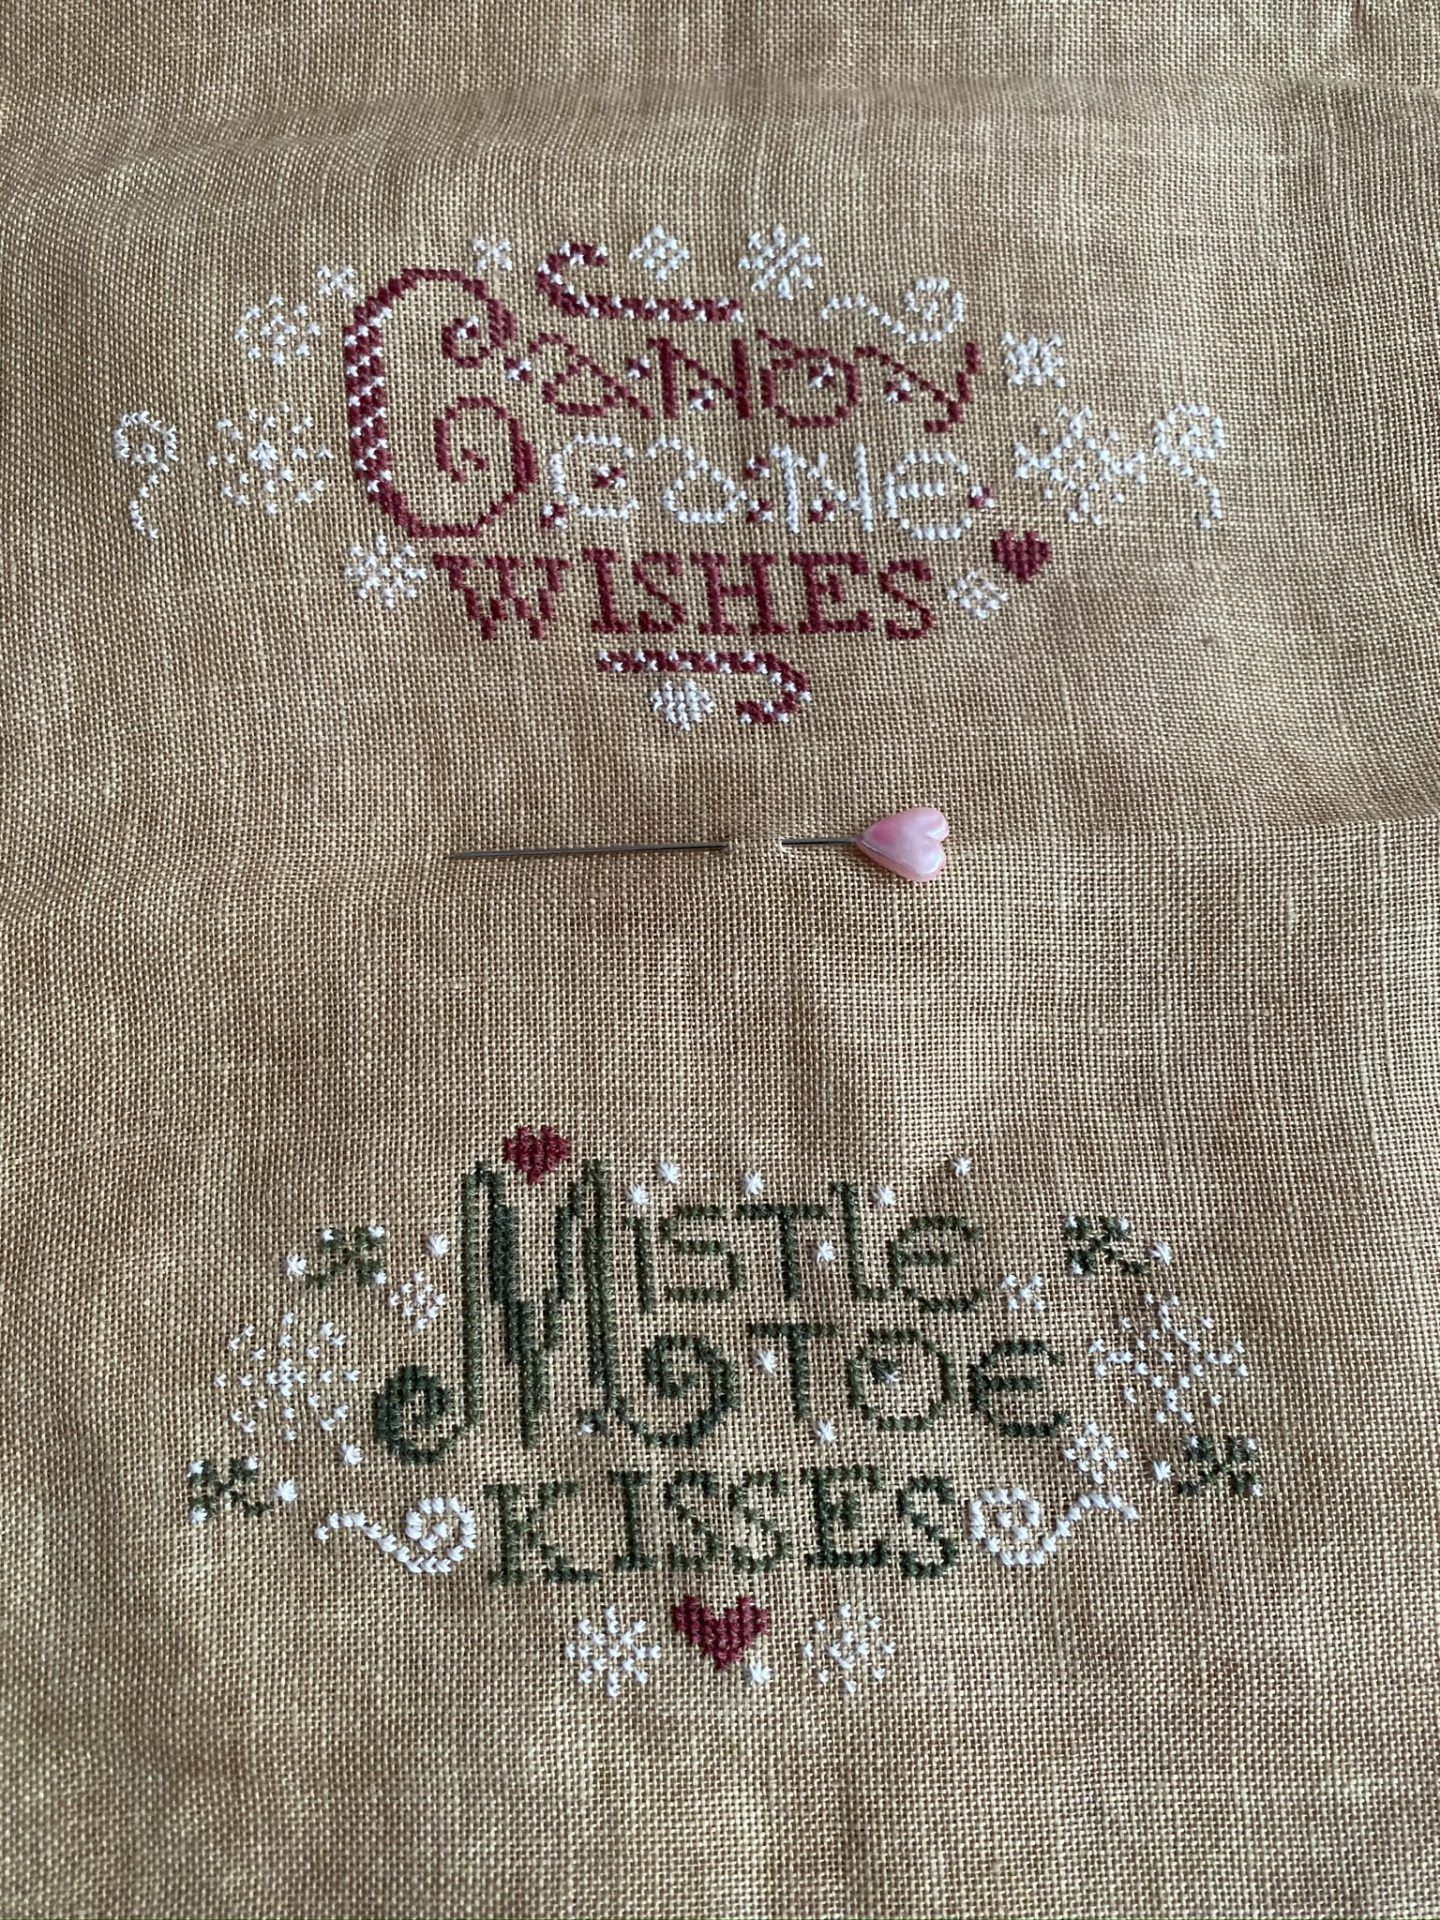 Stitching completed of Erica Michaels berry designs Mistletoe Kisses